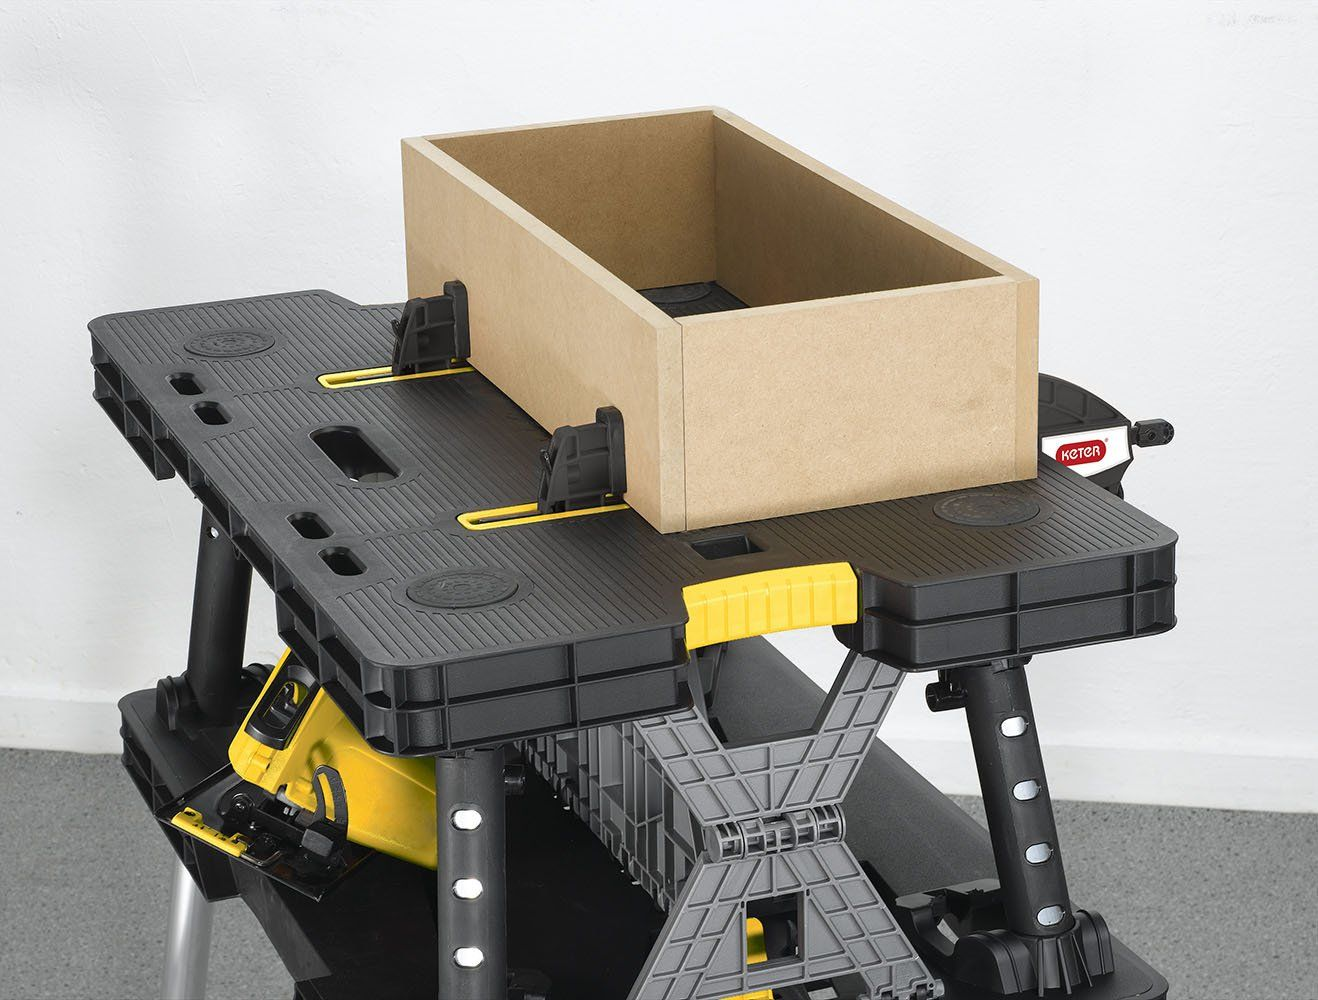 Keter Folding Compact Workbench Sawhorse Work Table With Clamps 1000 Lb Capacity You Can Find More Information Keter Folding Work Table Work Table Workbench